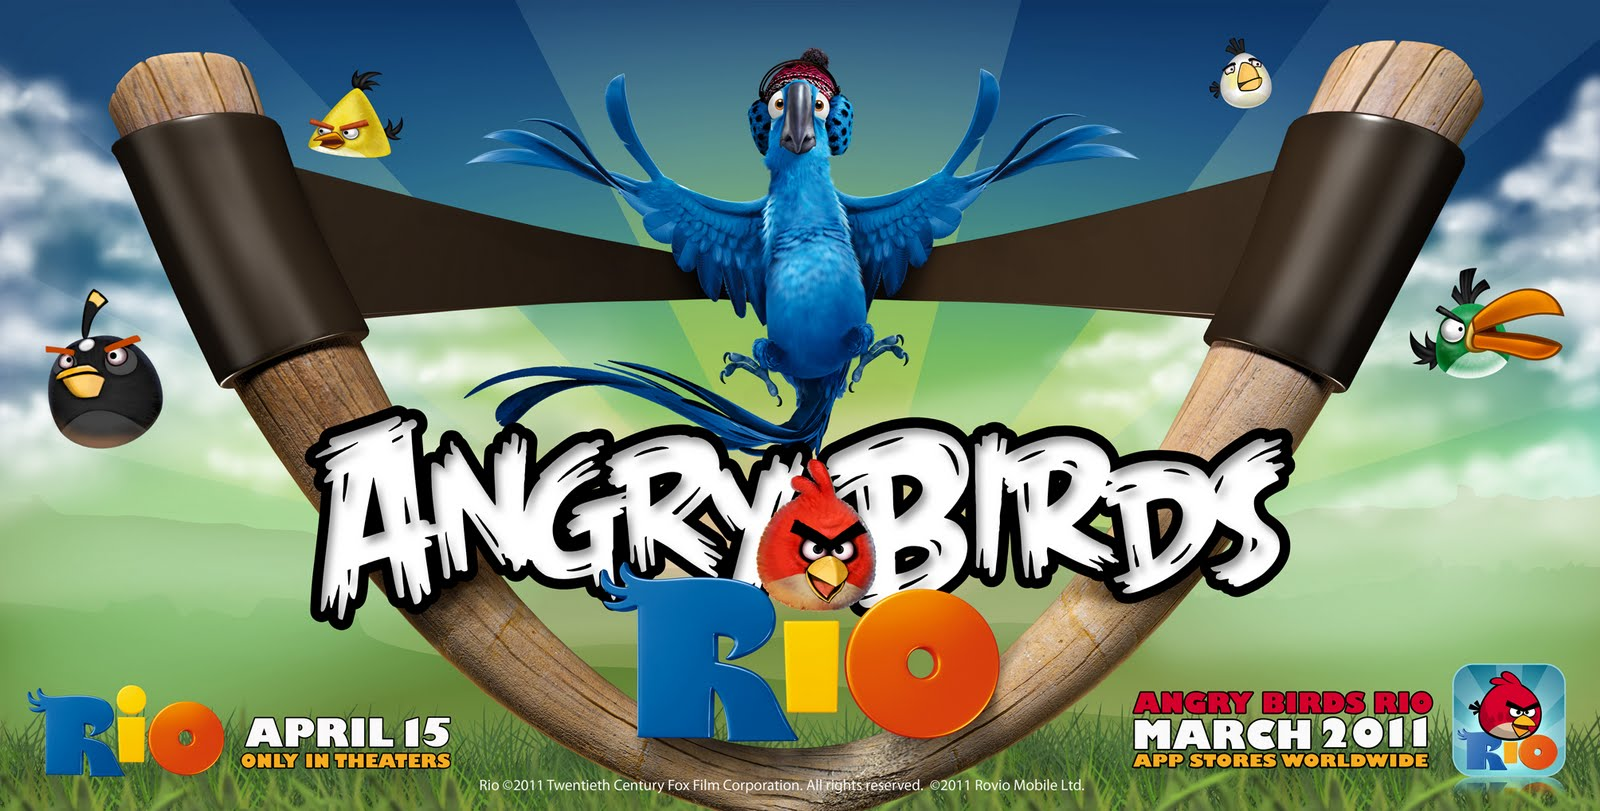 http://1.bp.blogspot.com/-neN8lfNSDp4/Tfix-e7hidI/AAAAAAAAAL0/oBAub9MB9BE/s1600/Rio_Movie_Angry_Bird_Wallpapers+%252812%2529.jpg